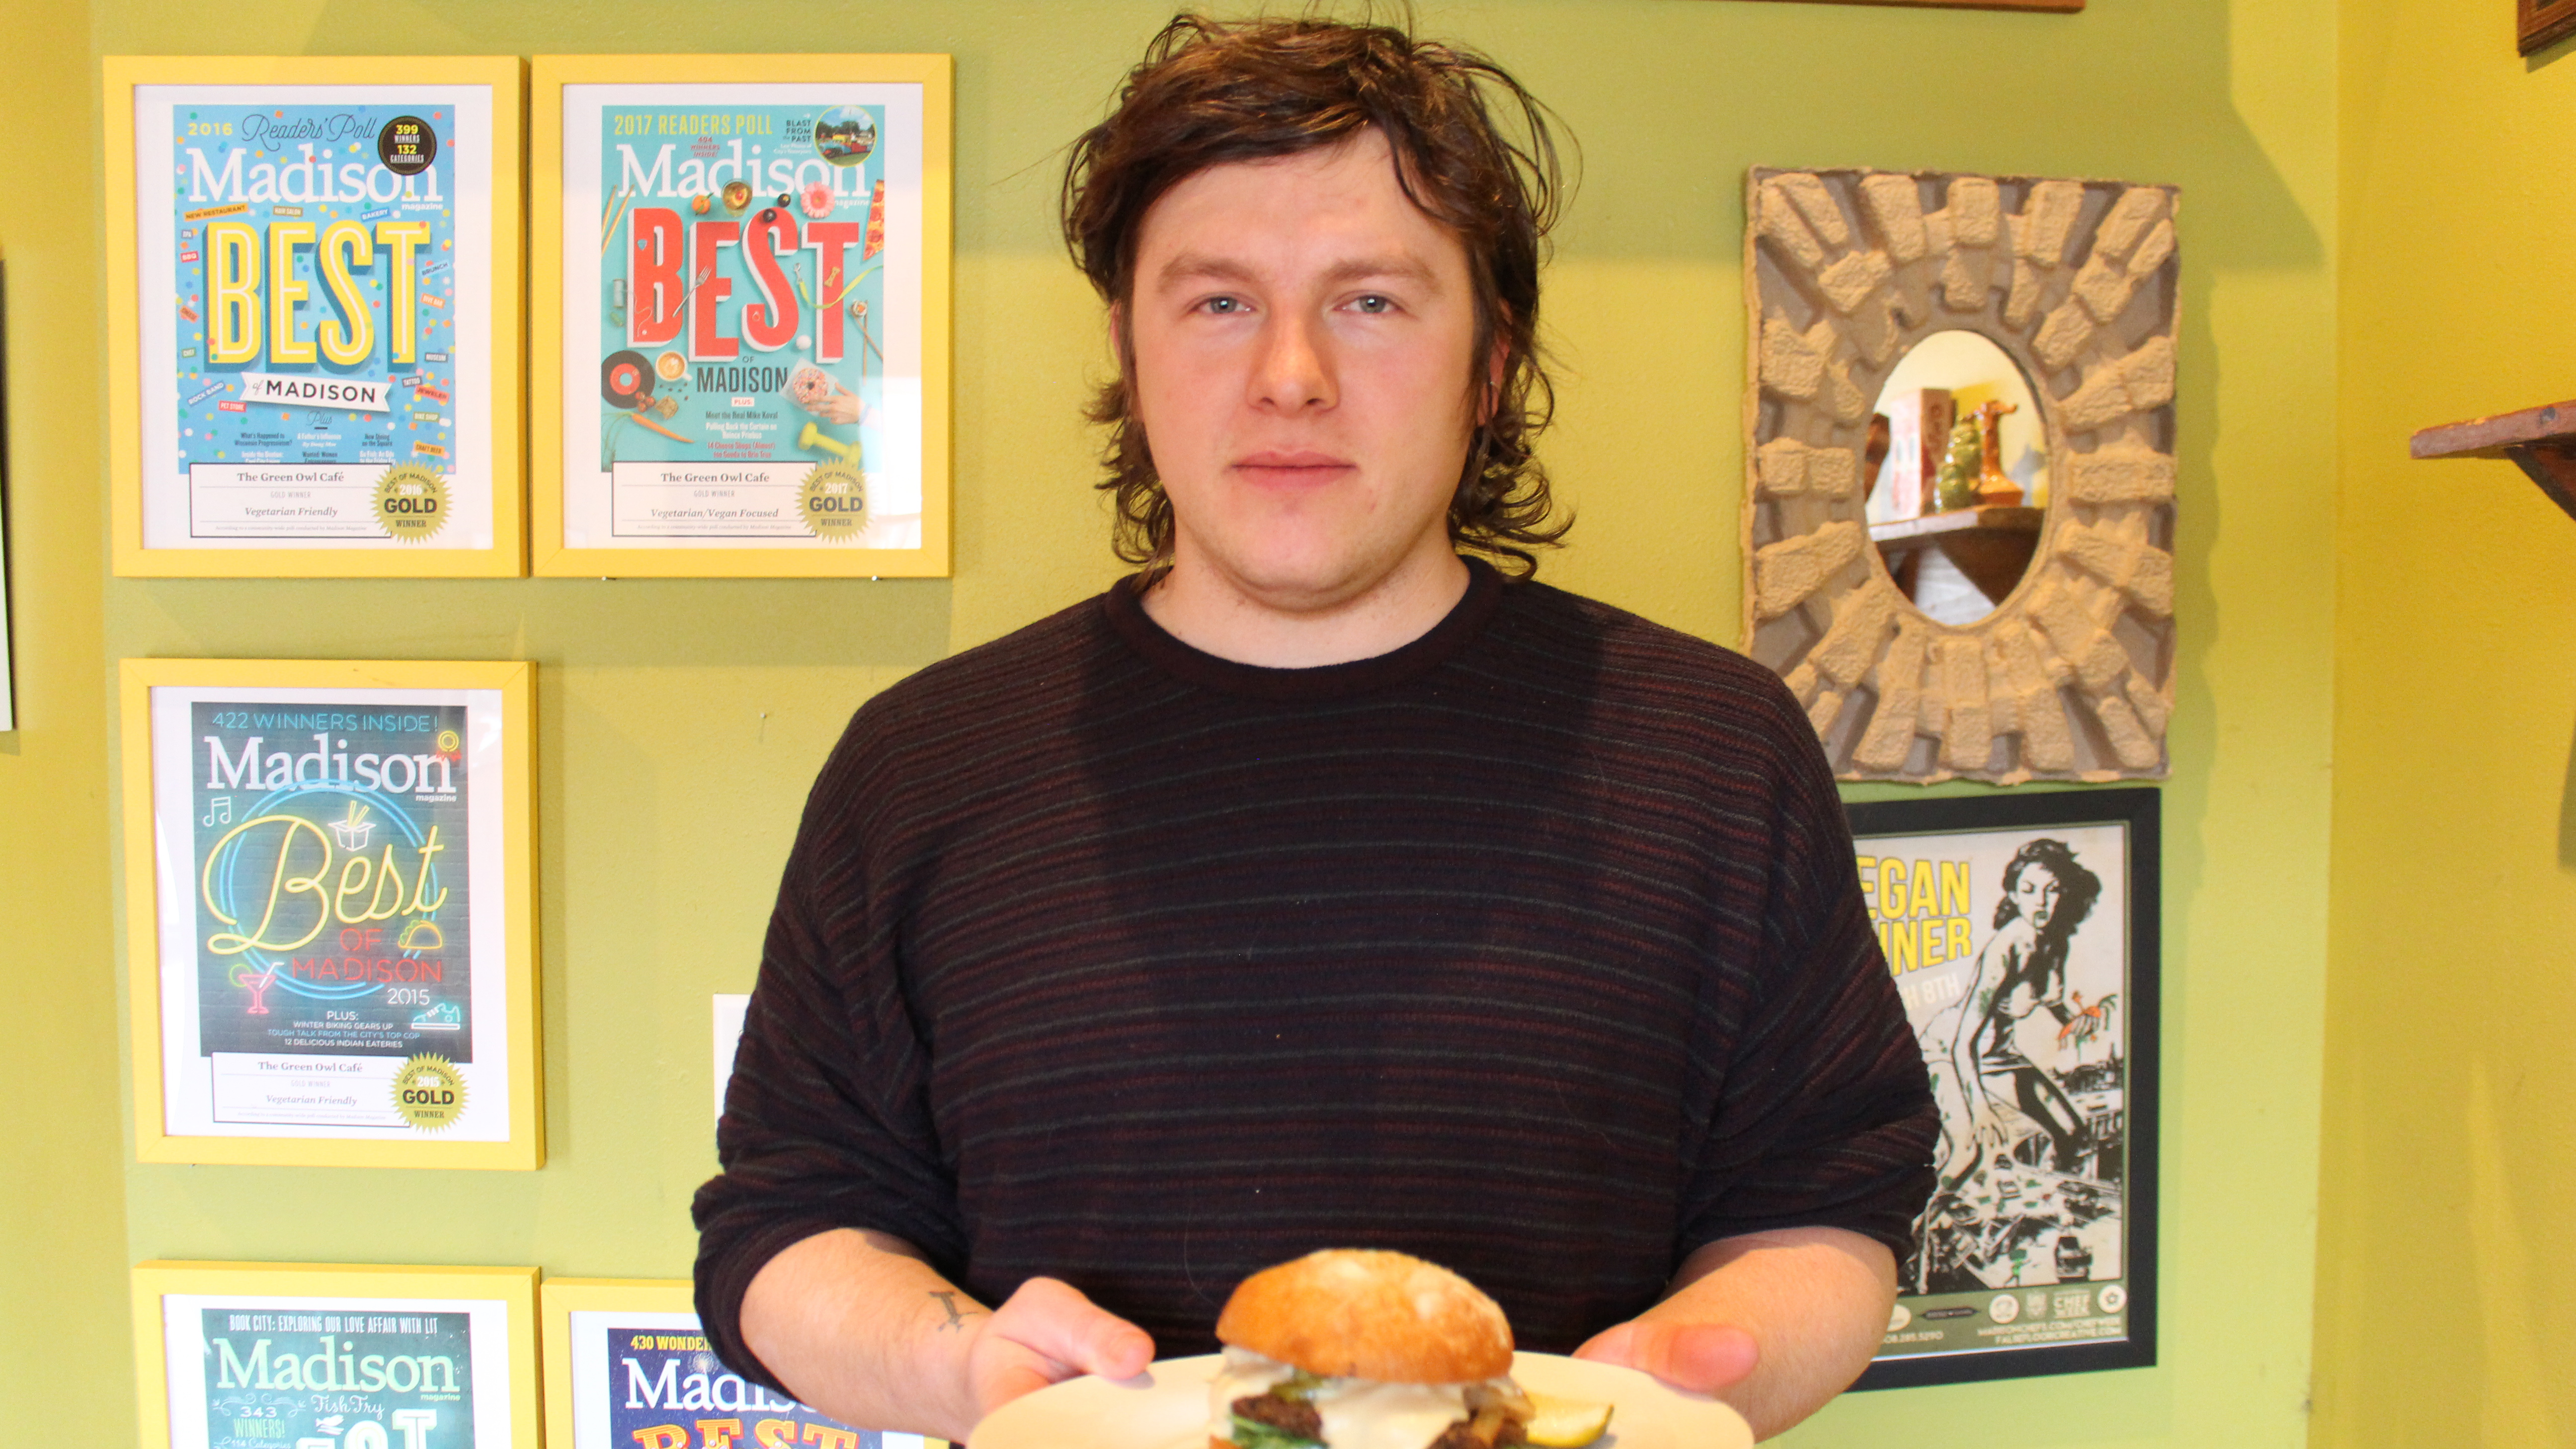 Erick Fruehling standing in The Green Owl Cafe with a burger